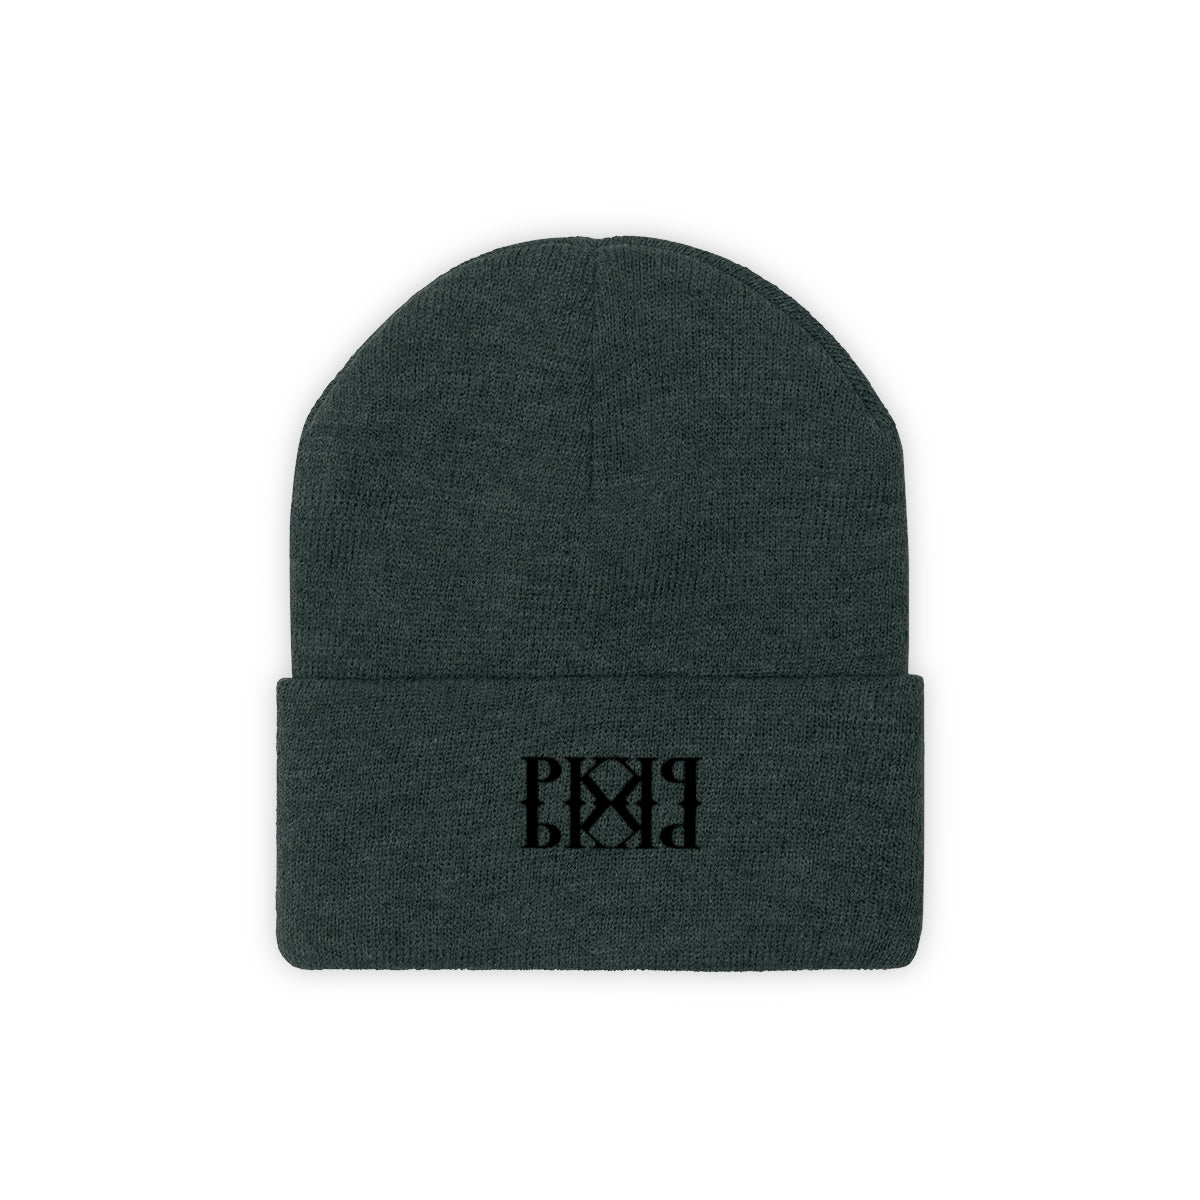 PK MULTI-COLORED KNIT BEANIE